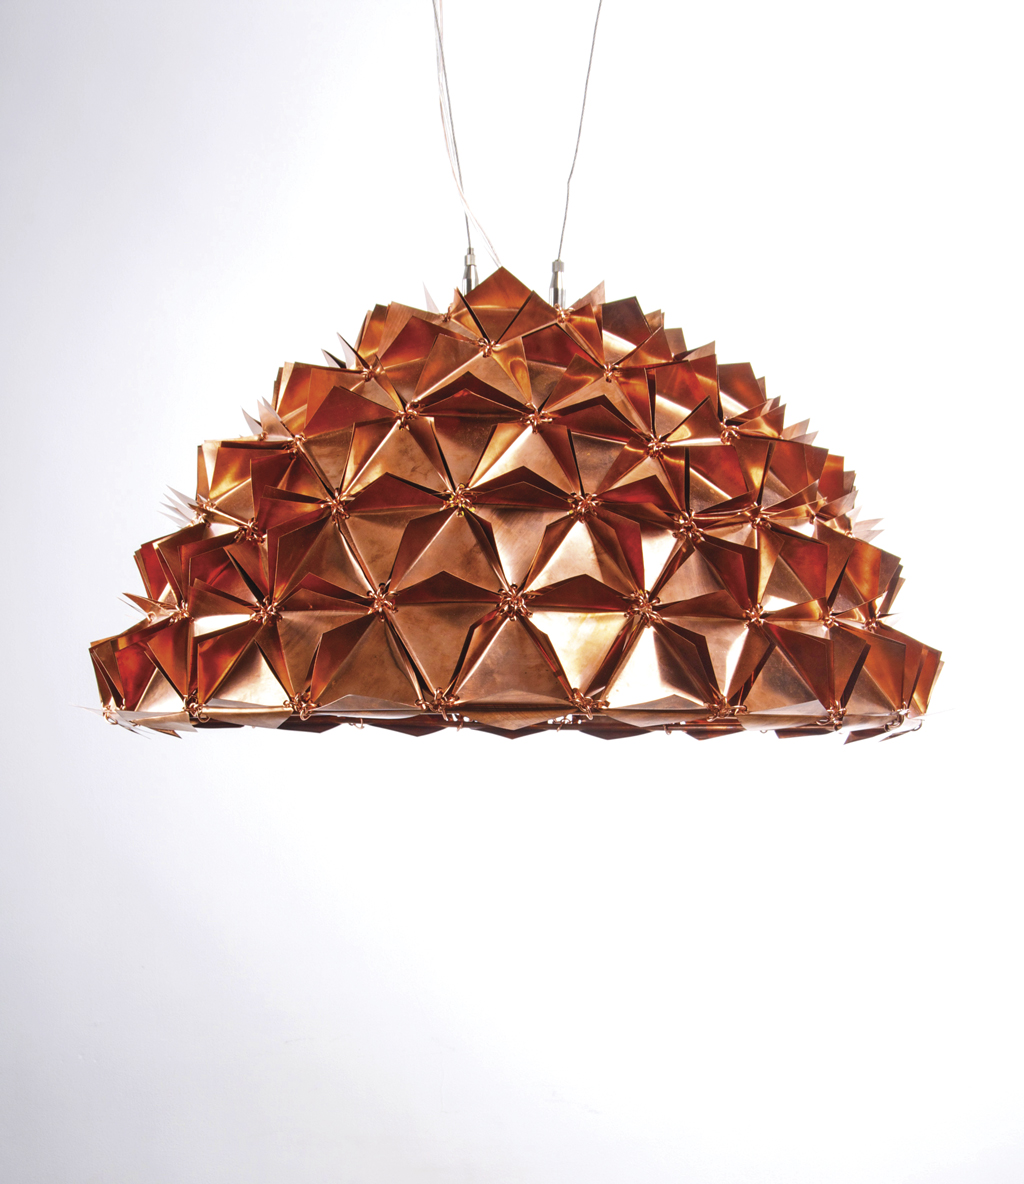 'Faceted Copper Dome' from The Faceted Tactile Light Series based on Buckminster Fuller's geodesic dome